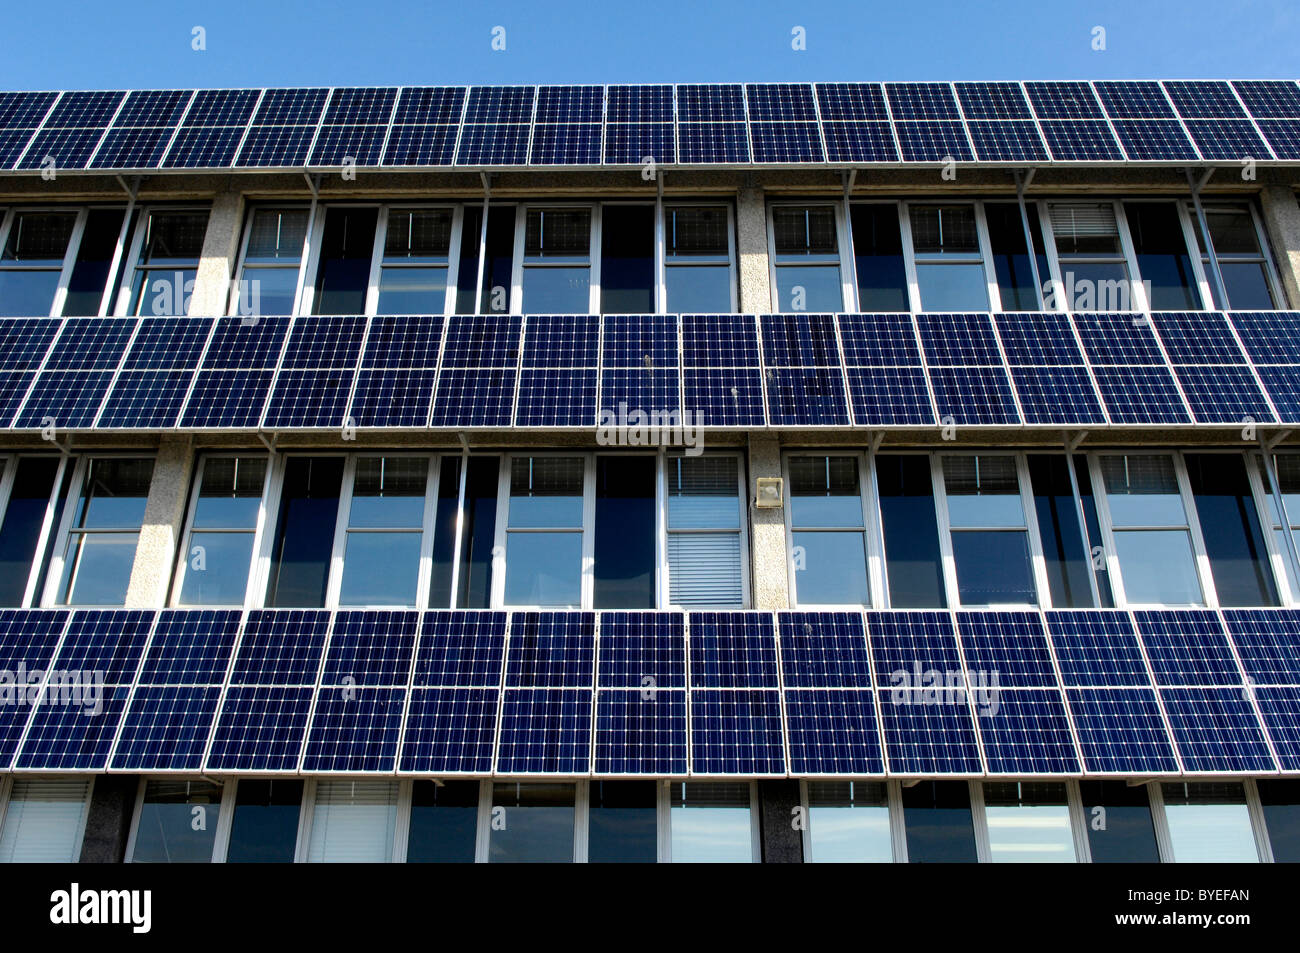 Rows Of Photovoltaic Solar Panels On The Side Of A Council